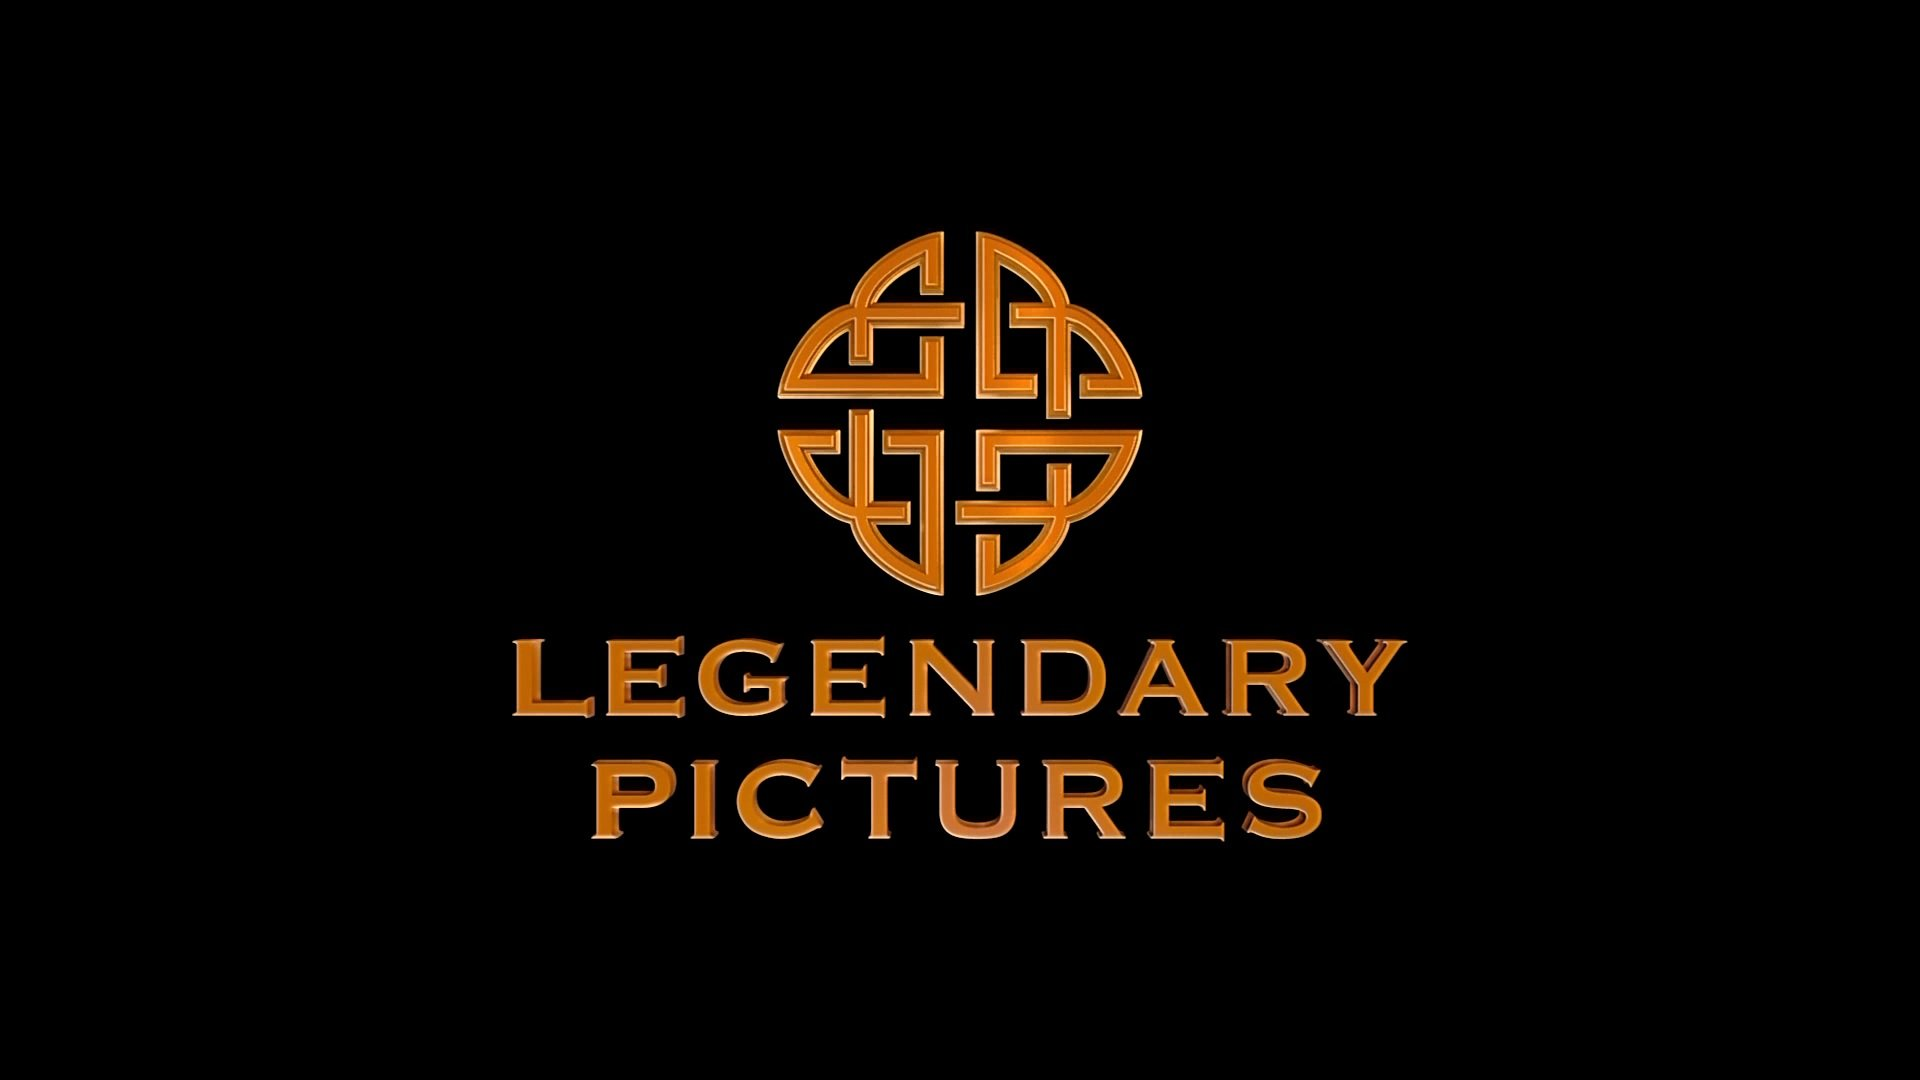 Legendary Acquire the Rights